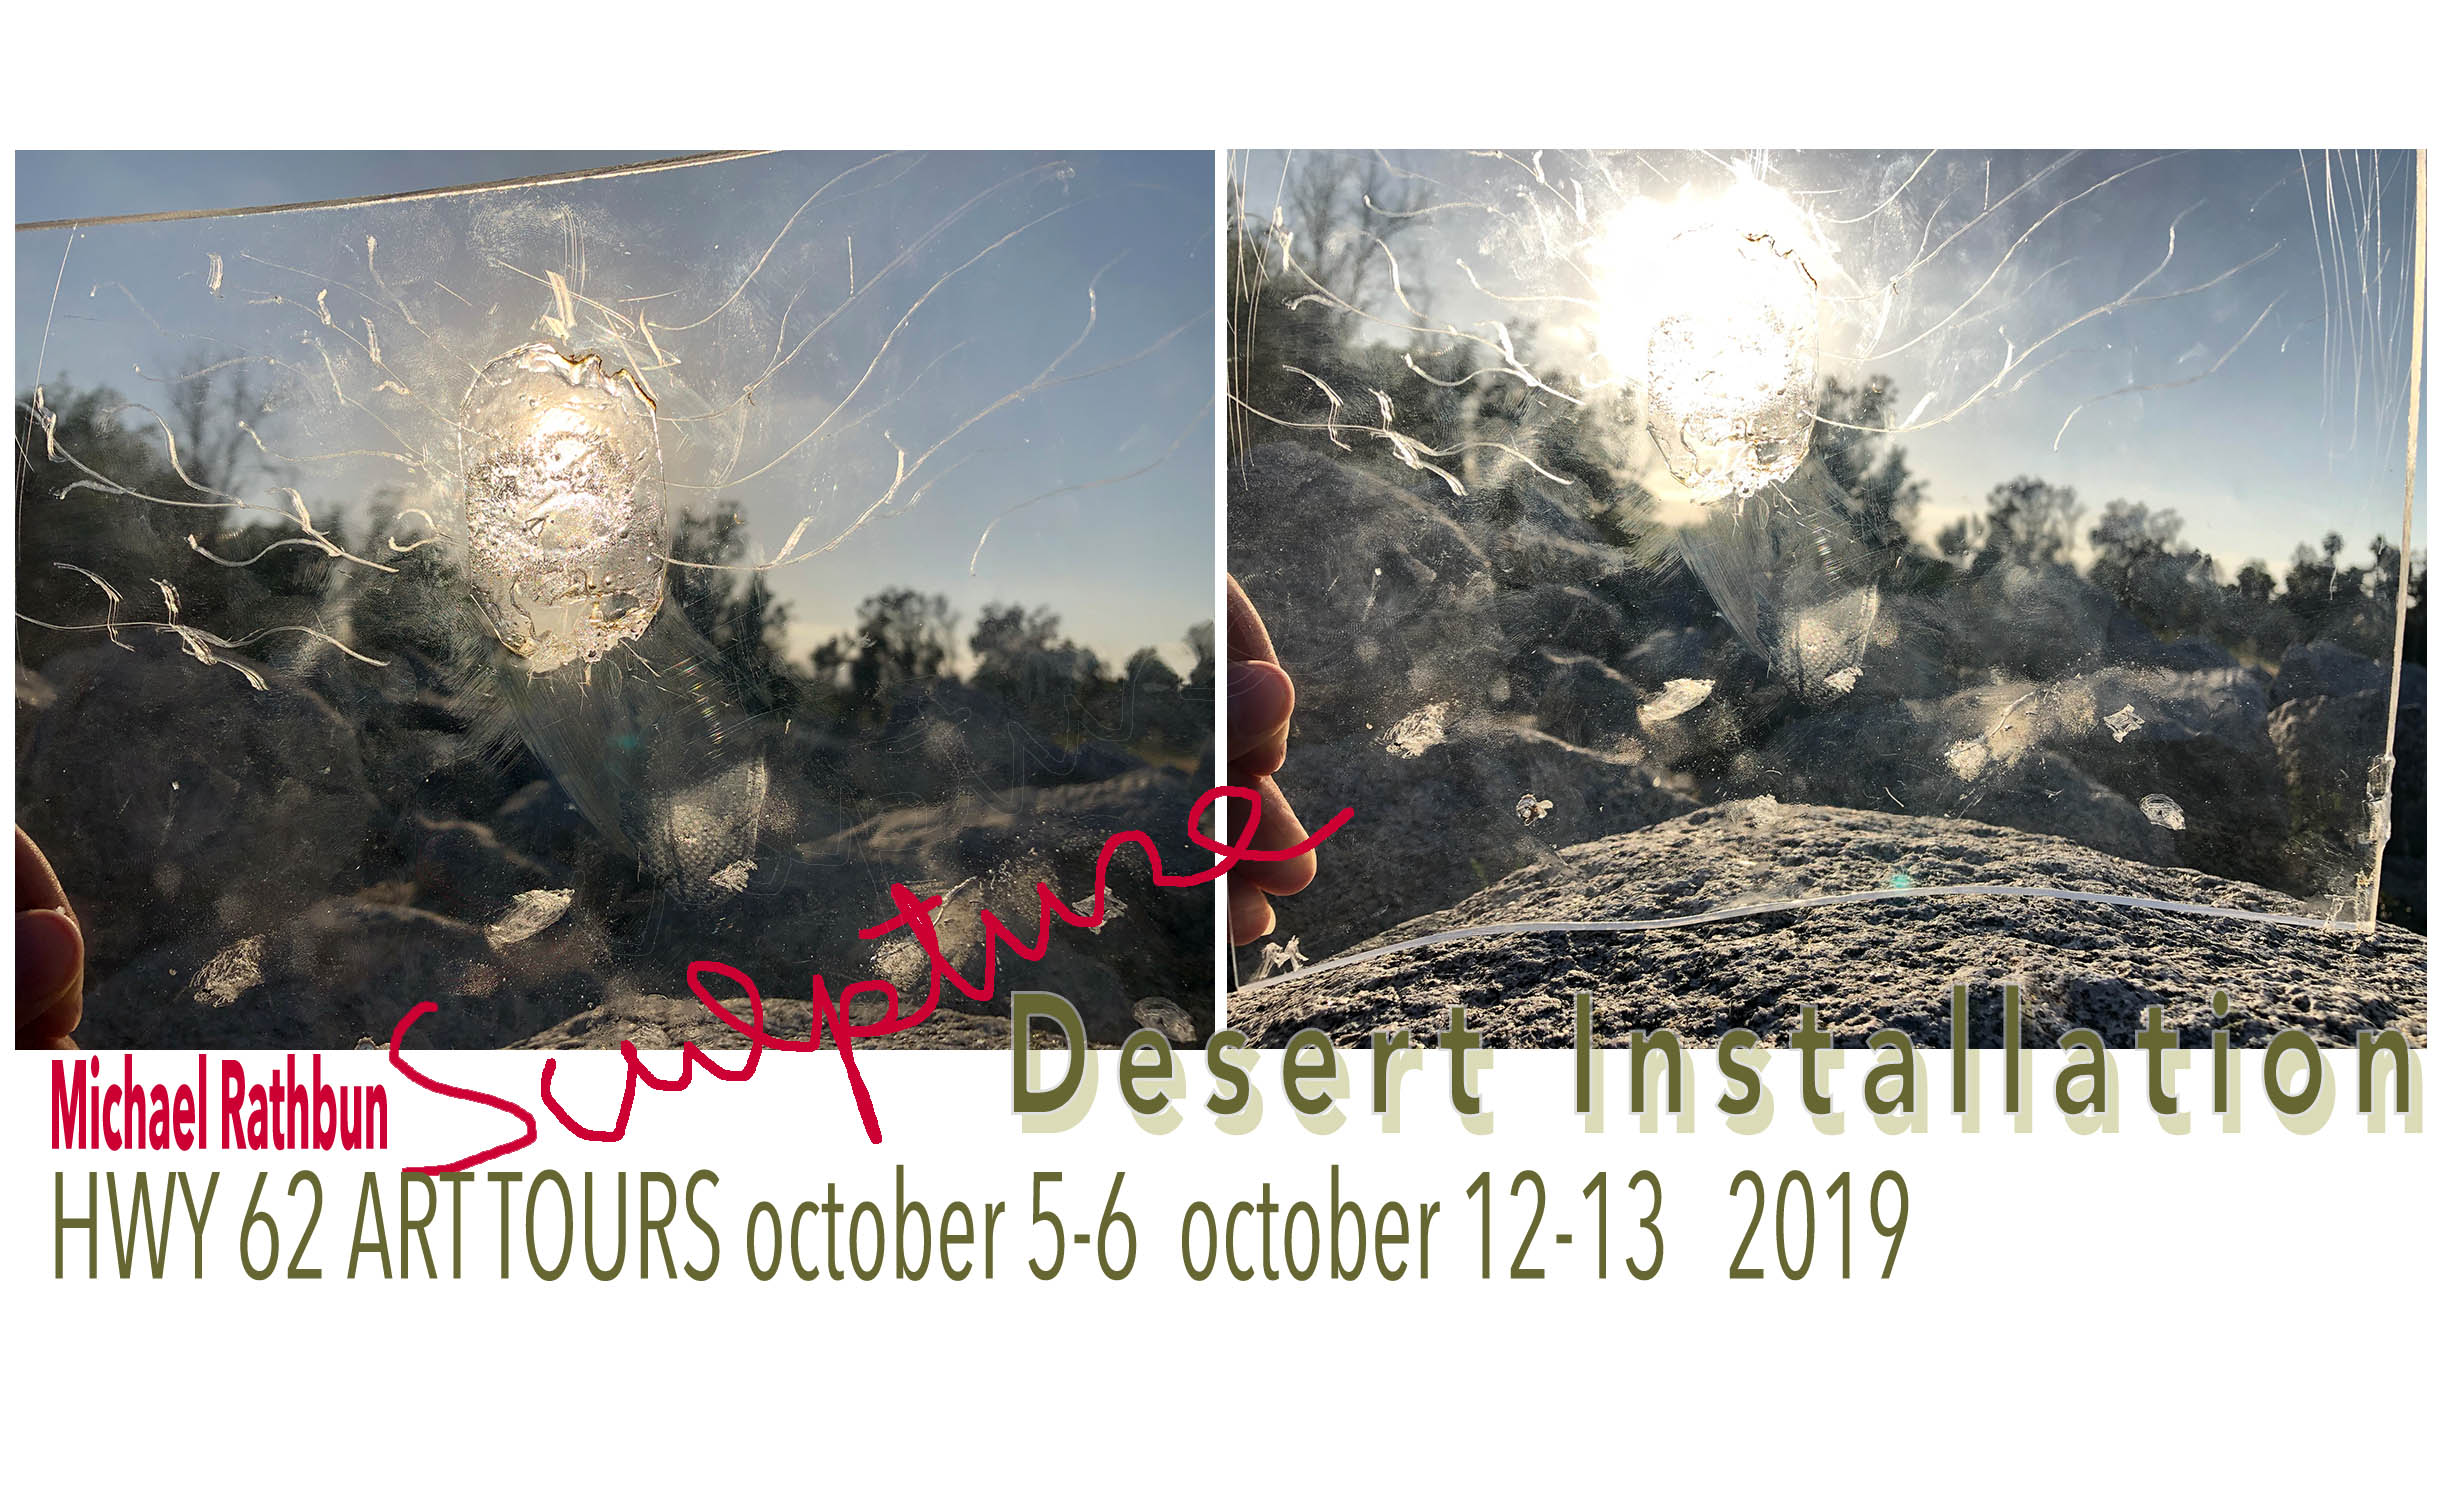 MIchael Rathbun 2019 Artist in Residence Hwy 62 Art Tours Oct 5-6, Oct 12-13, 2019